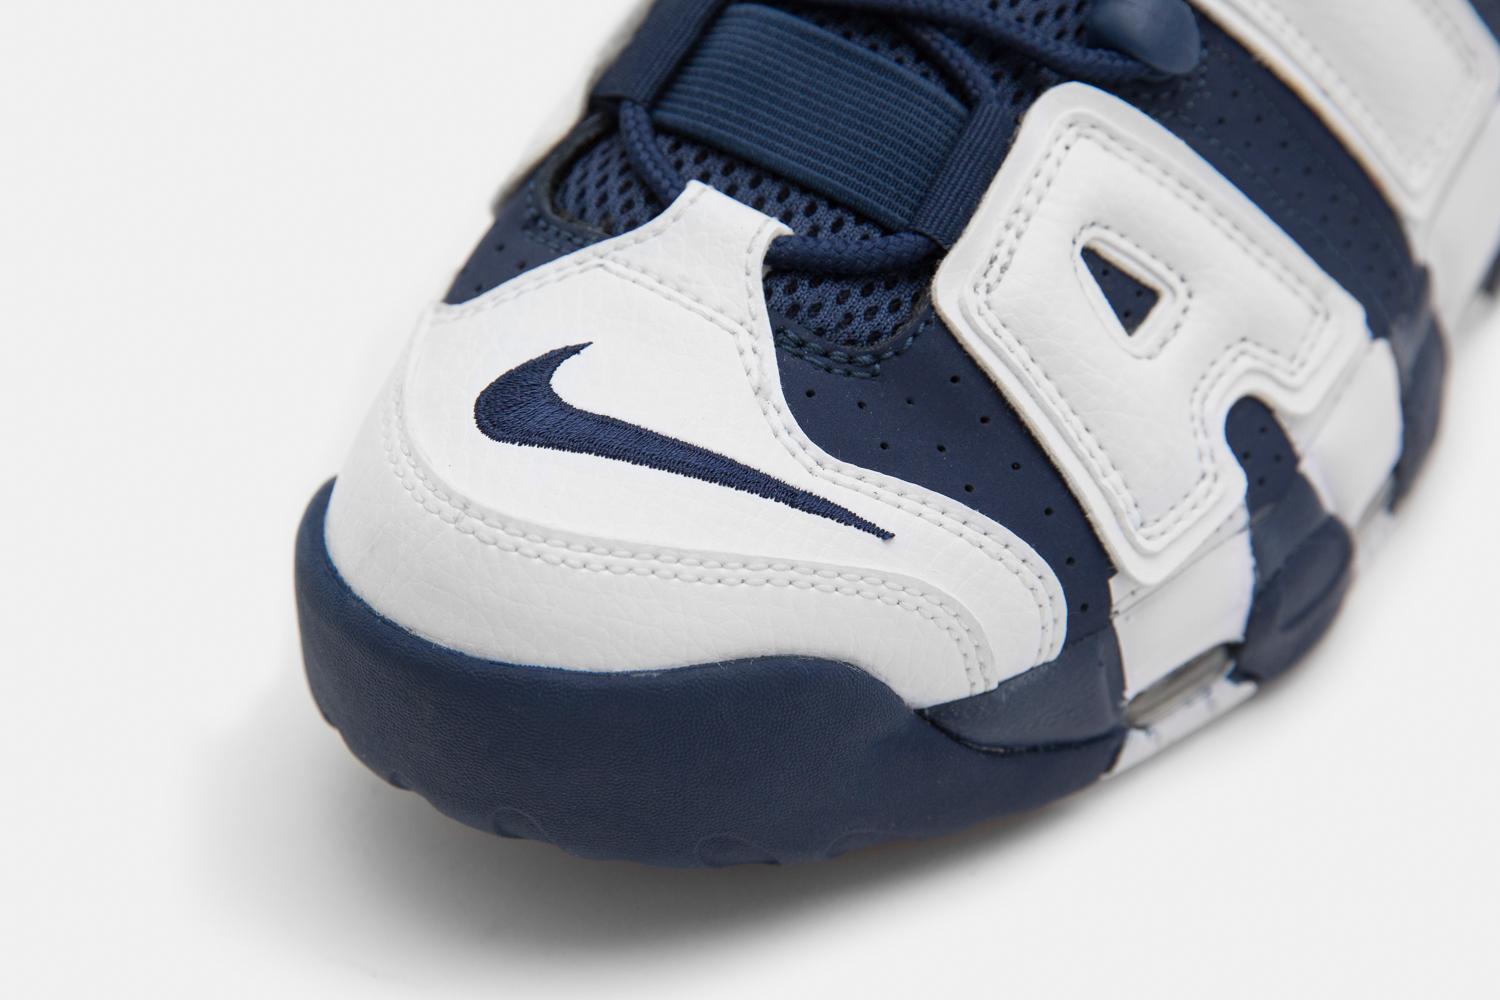 69db2c8c1764 Nike Air More Uptempo 'Olympic' - size? blog